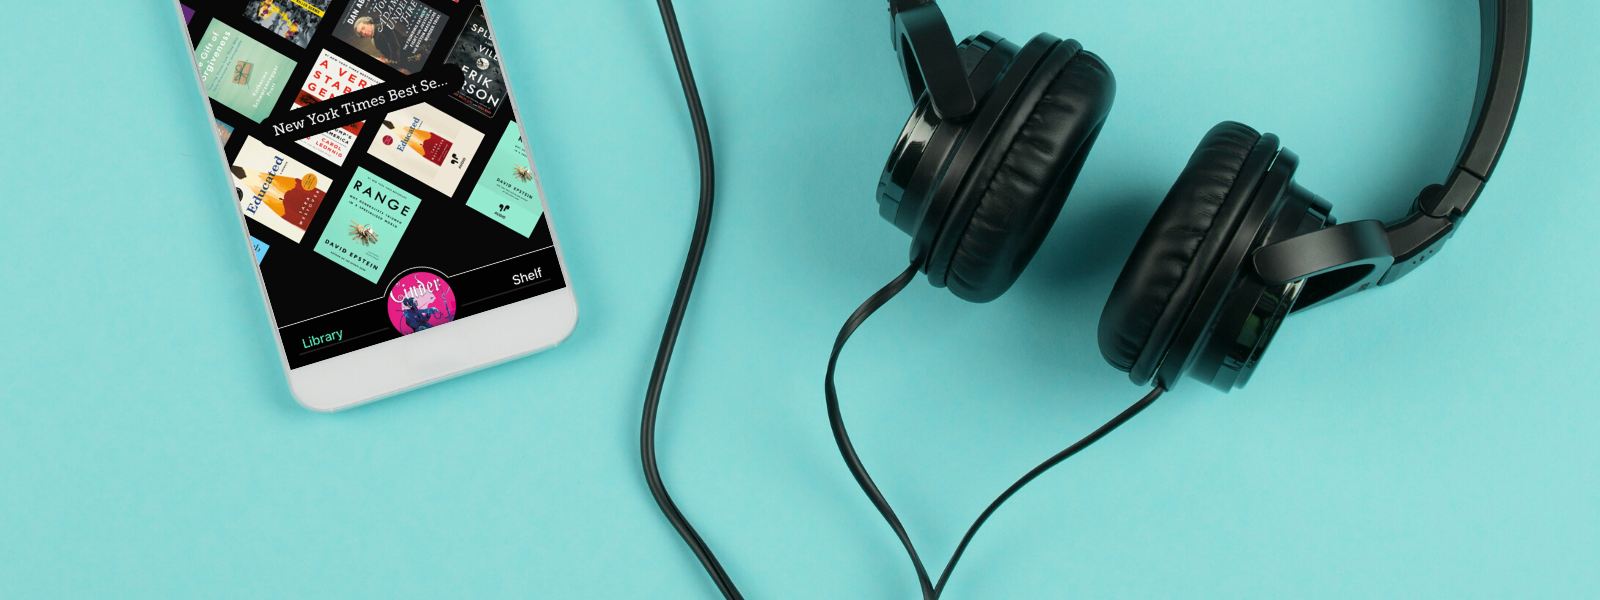 a phone with the Libby app and a pair of black headphones against a bright teal background